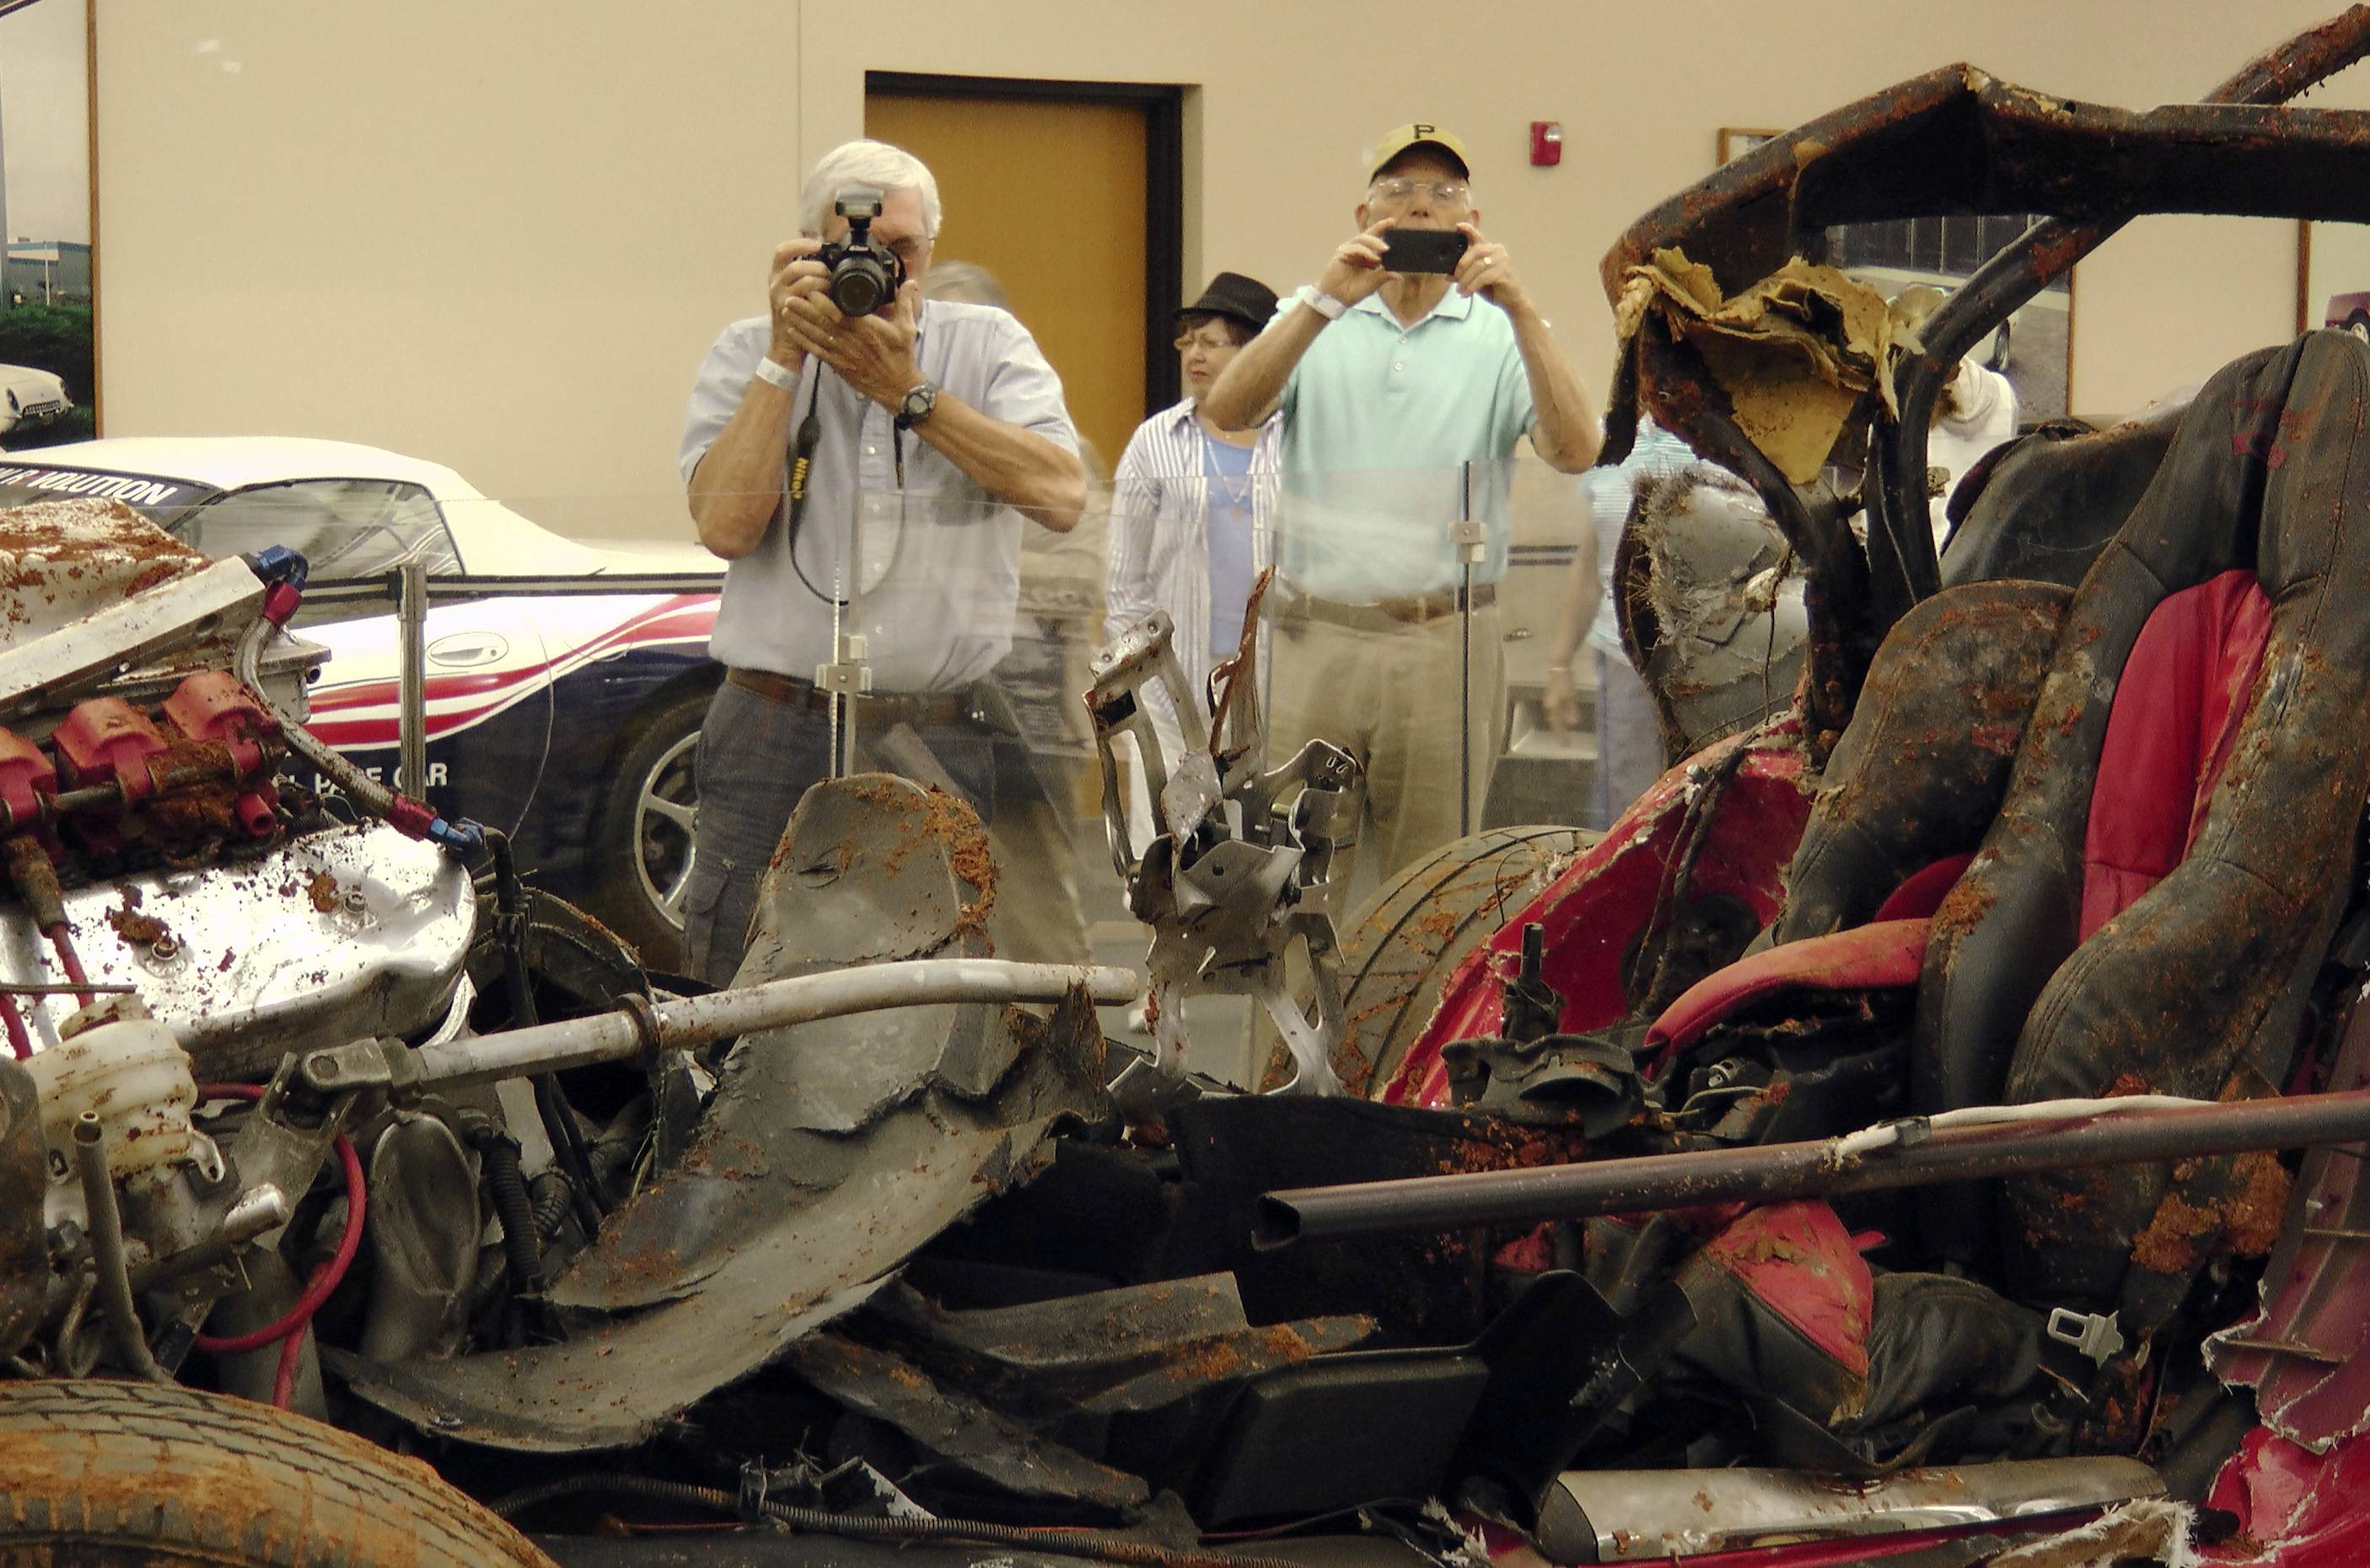 Lynn Jones, left, takes a photo of a 2001 Corvette that fell into a sinkhole at the National Corvette Museum in Bowling Green, Ky. Jones, from Collierville, Tenn., came to the museum to see the smashed cars and the sinkhole, which opened up and swallowed eight cars in February.